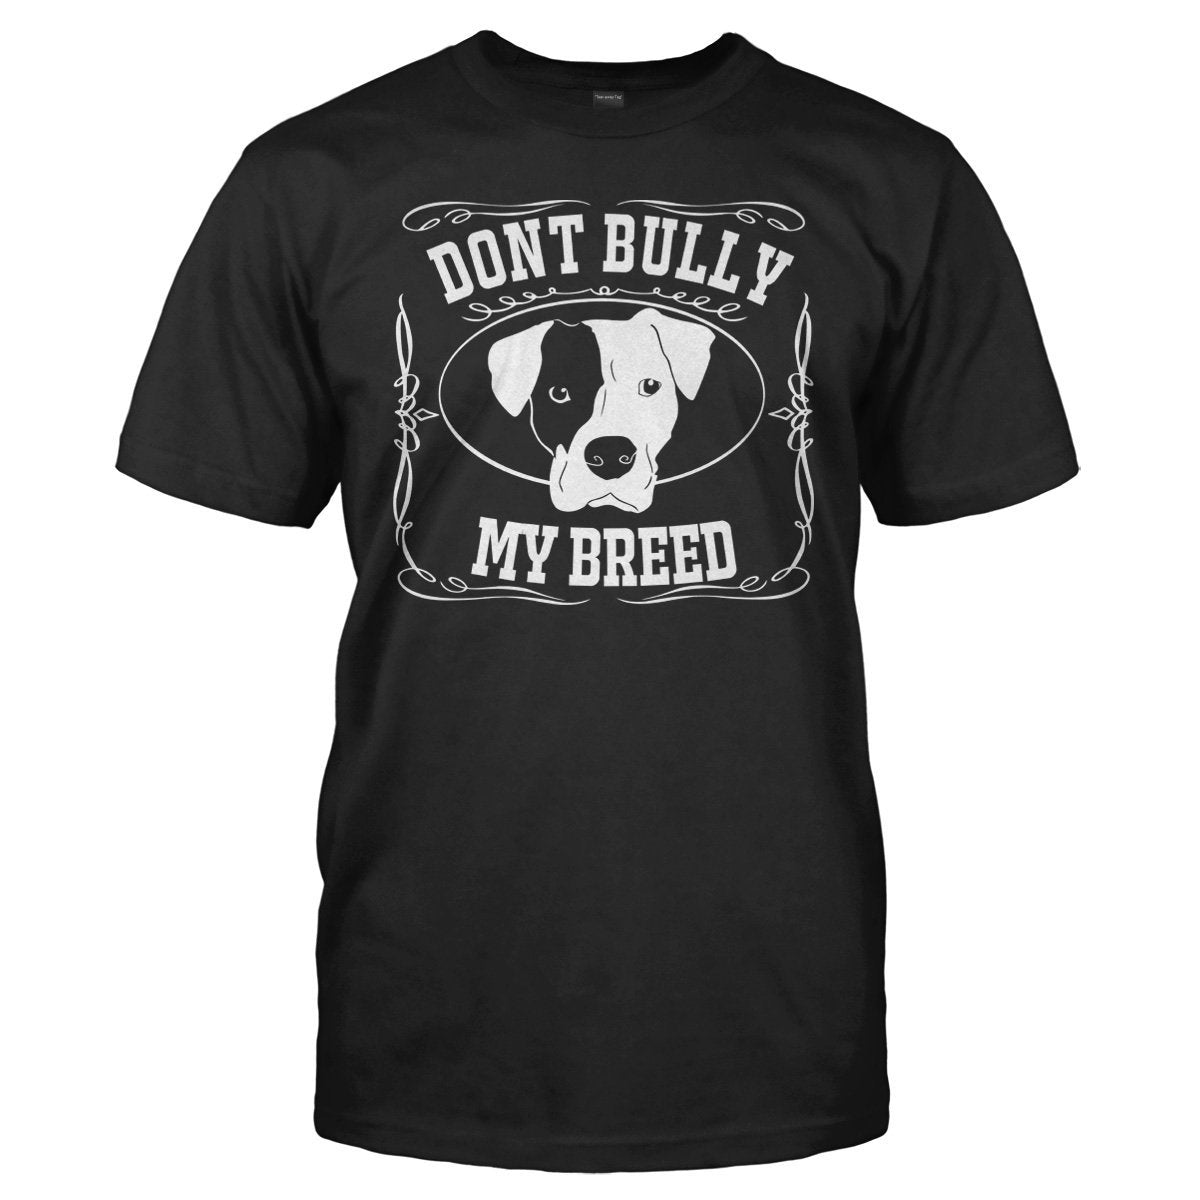 Don't Bully My Breed - T Shirt